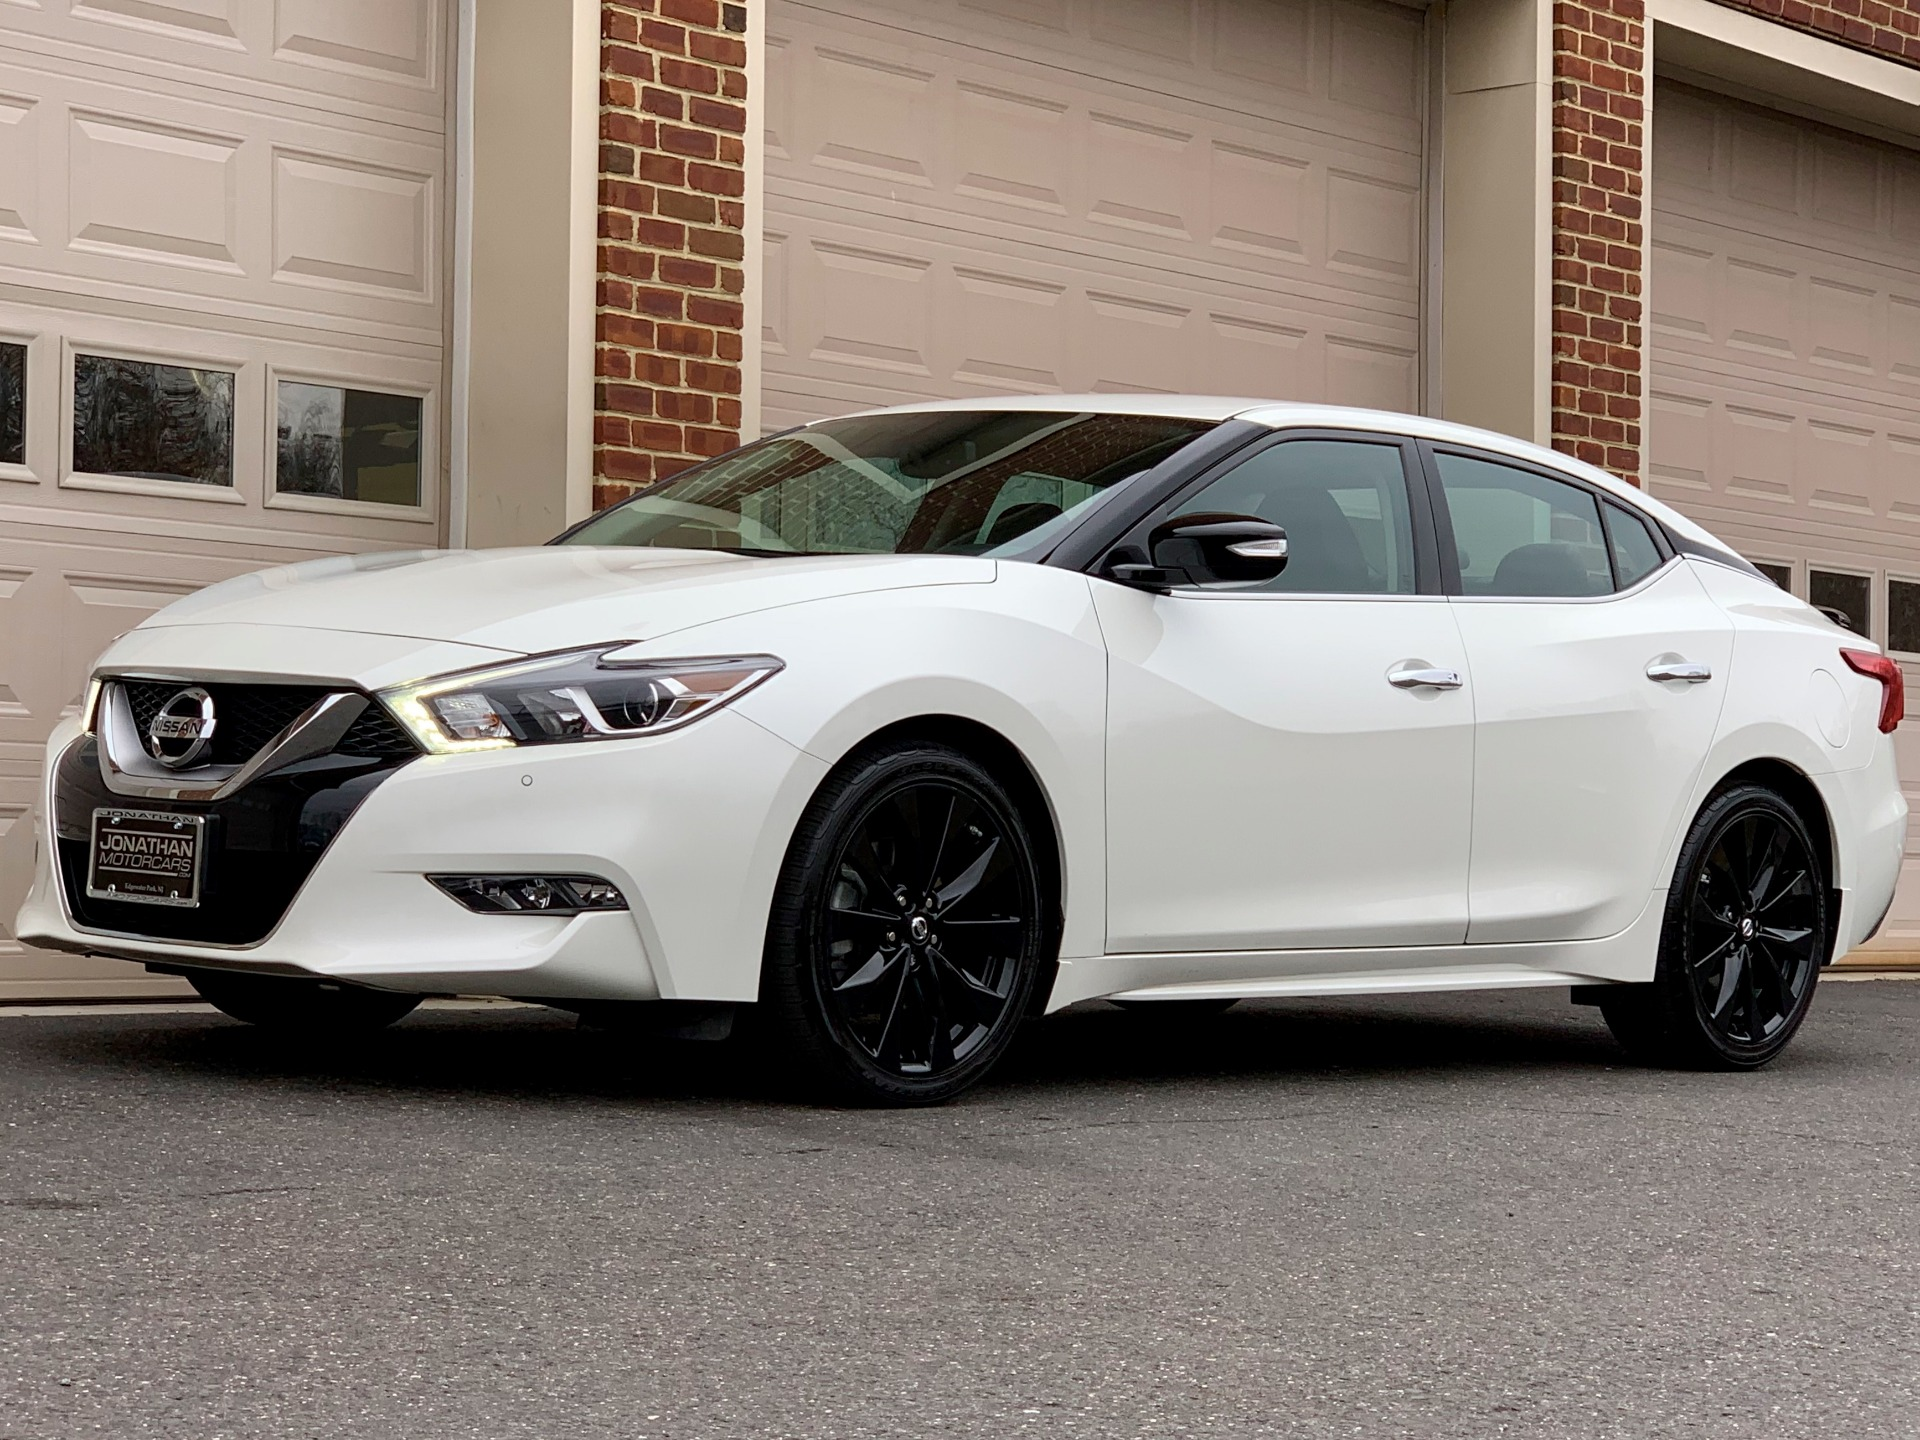 Nissan Dealers In Nj >> 2017 Nissan Maxima 3.5 SR Midnight Edition Stock # 450796 ...